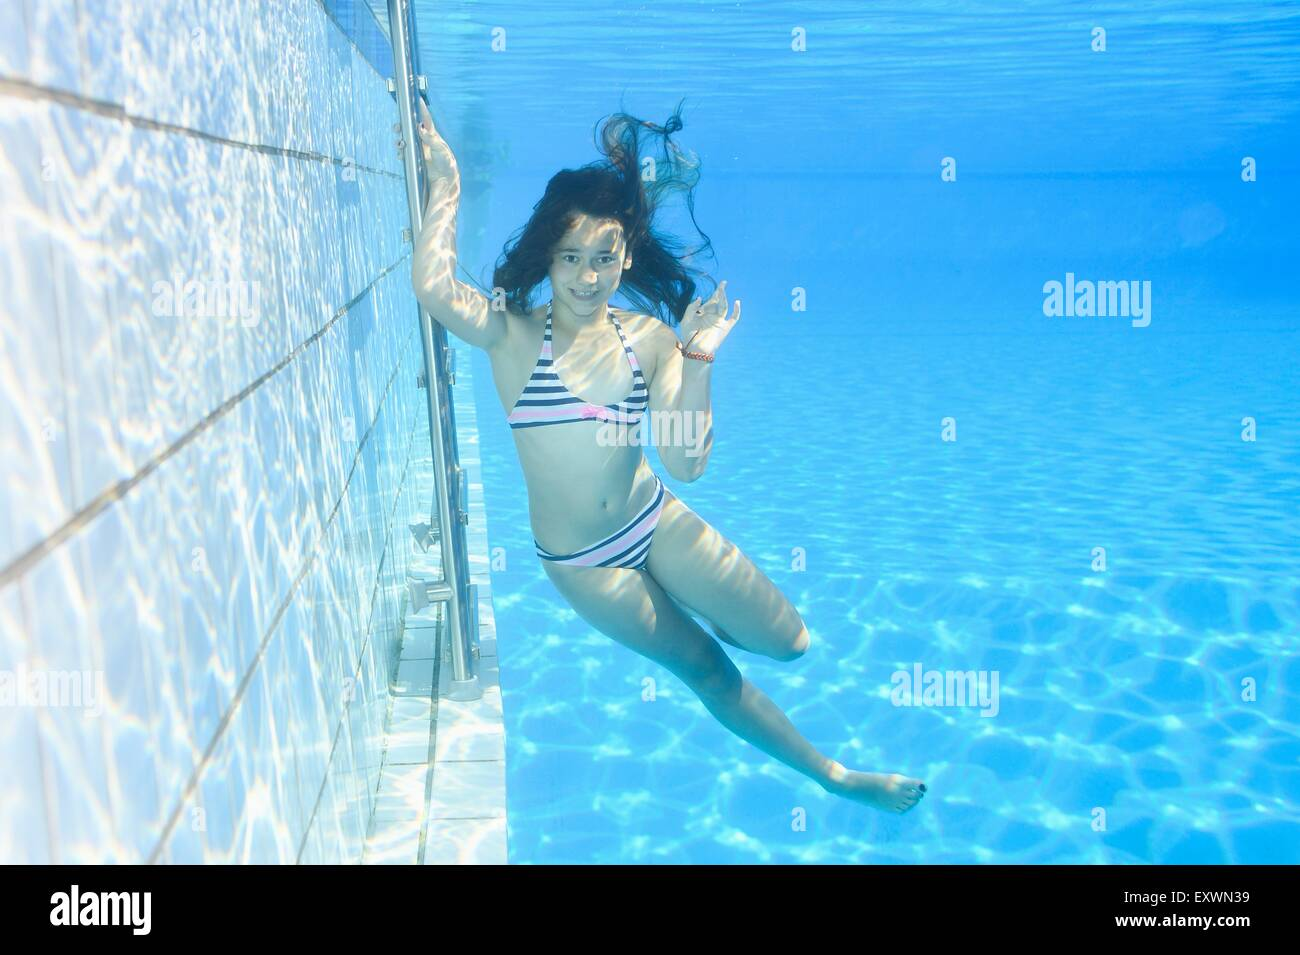 Girl under water in an open-air bath Stock Photo: 85387885 - Alamy